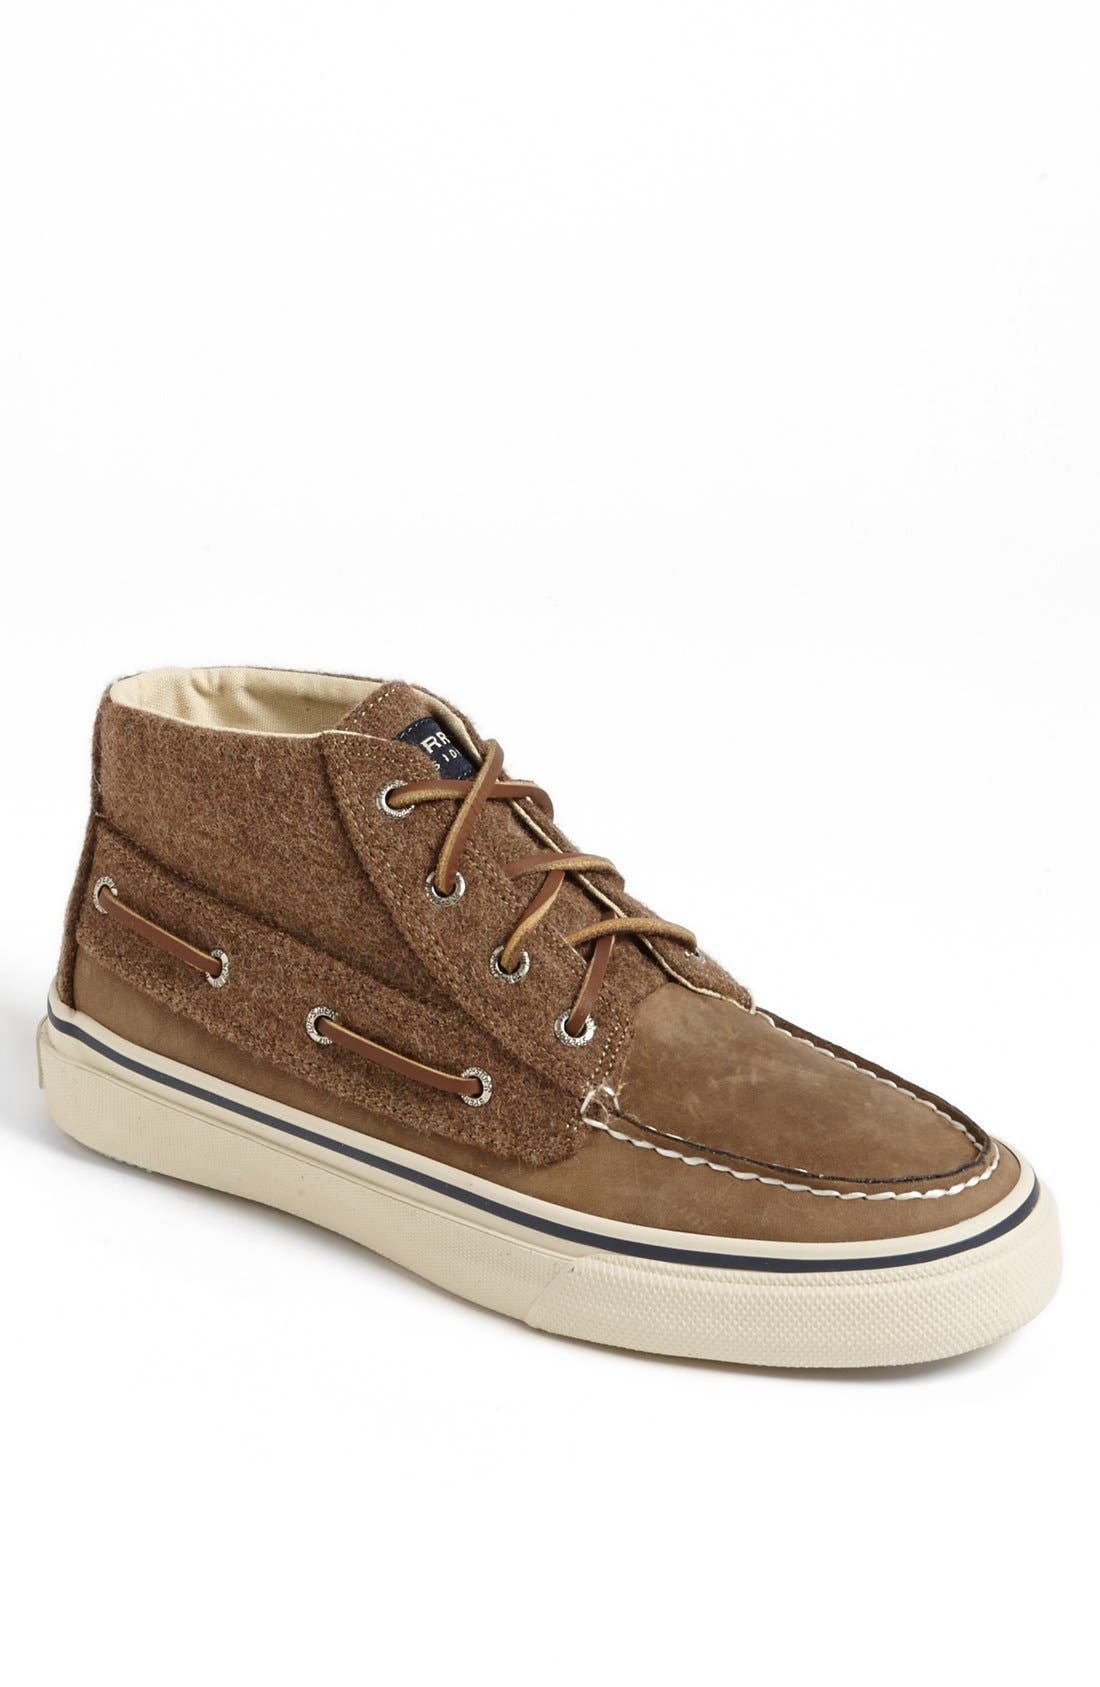 Alternate Image 1 Selected - Sperry Top-Sider® 'Bahama' Moc Toe Boot